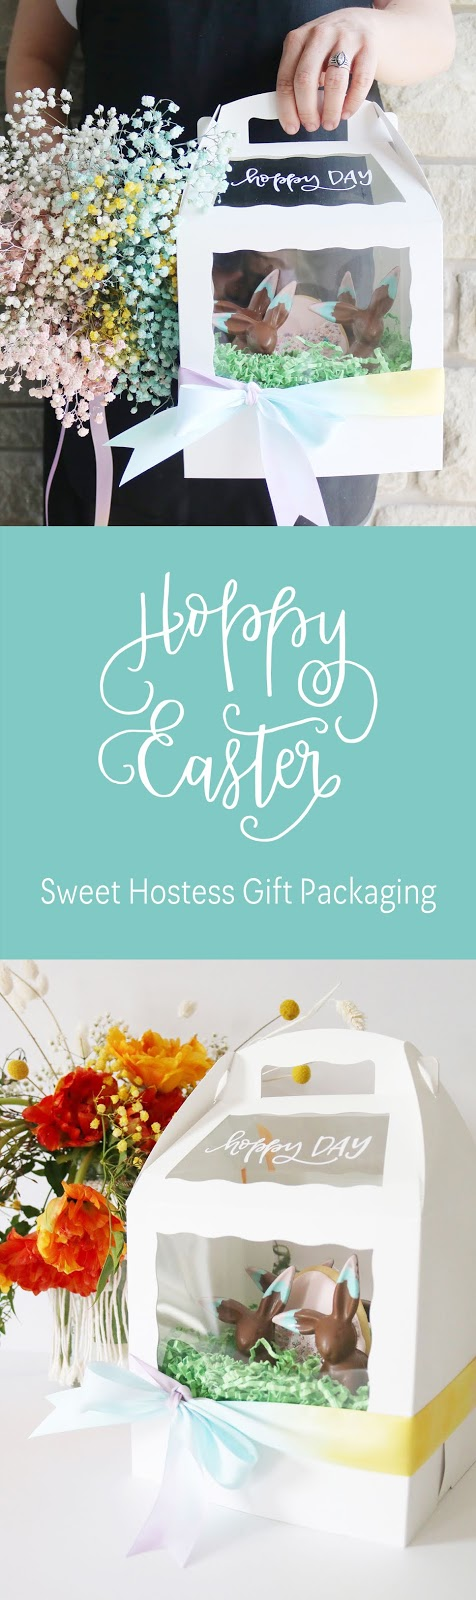 Oh hoppy day! Sweet hostess gift wrapping inspiration using cake pop boxes and hand lettering | Creative Bag